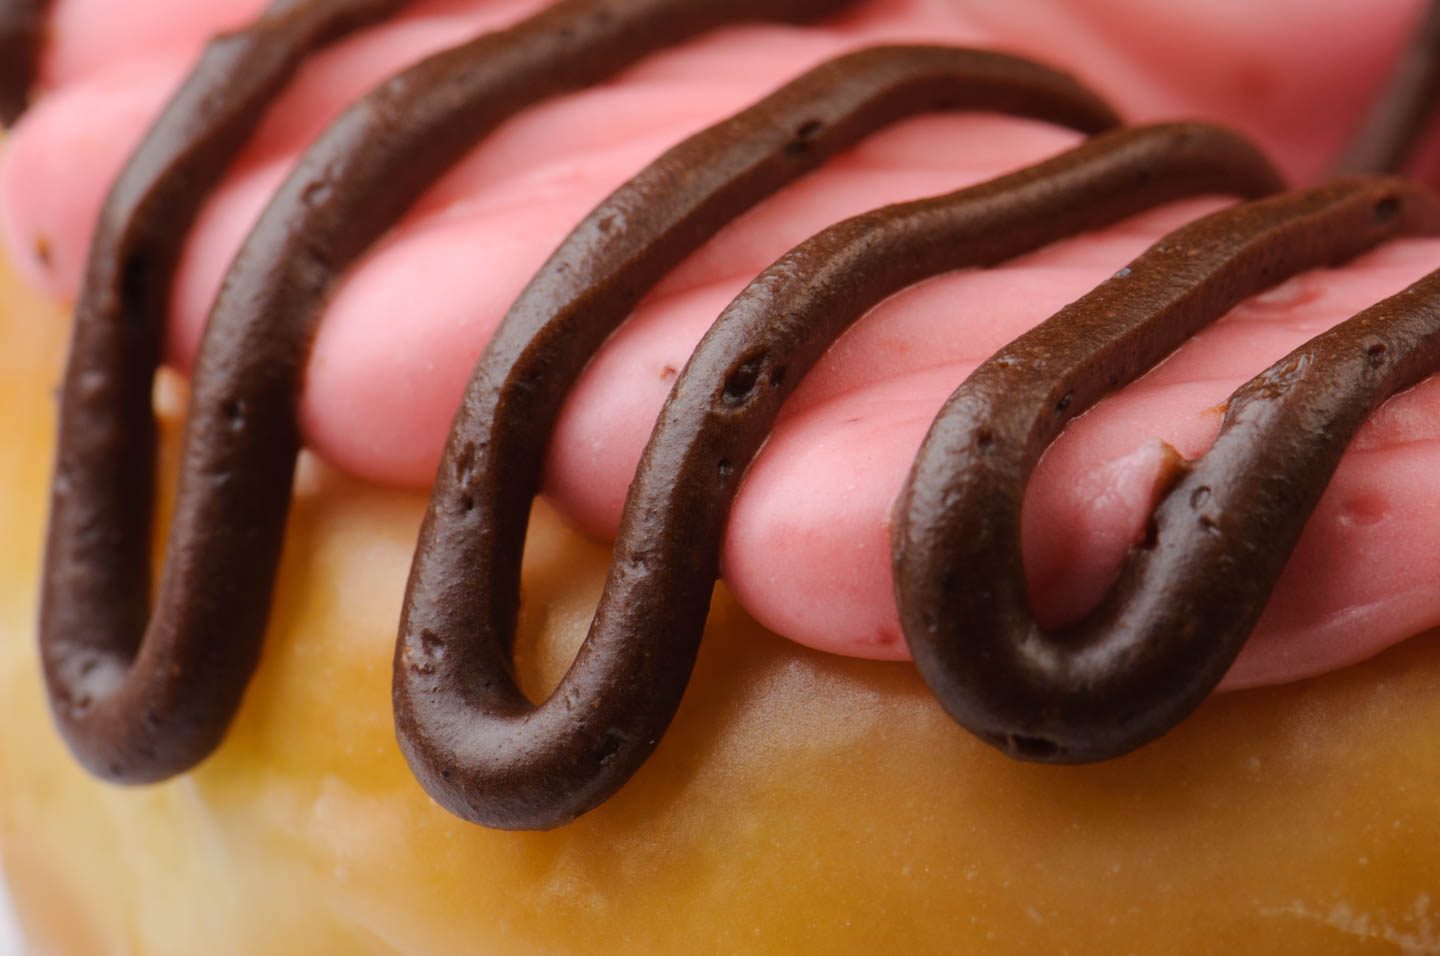 A close up view of the raspberry and chocolate frosting